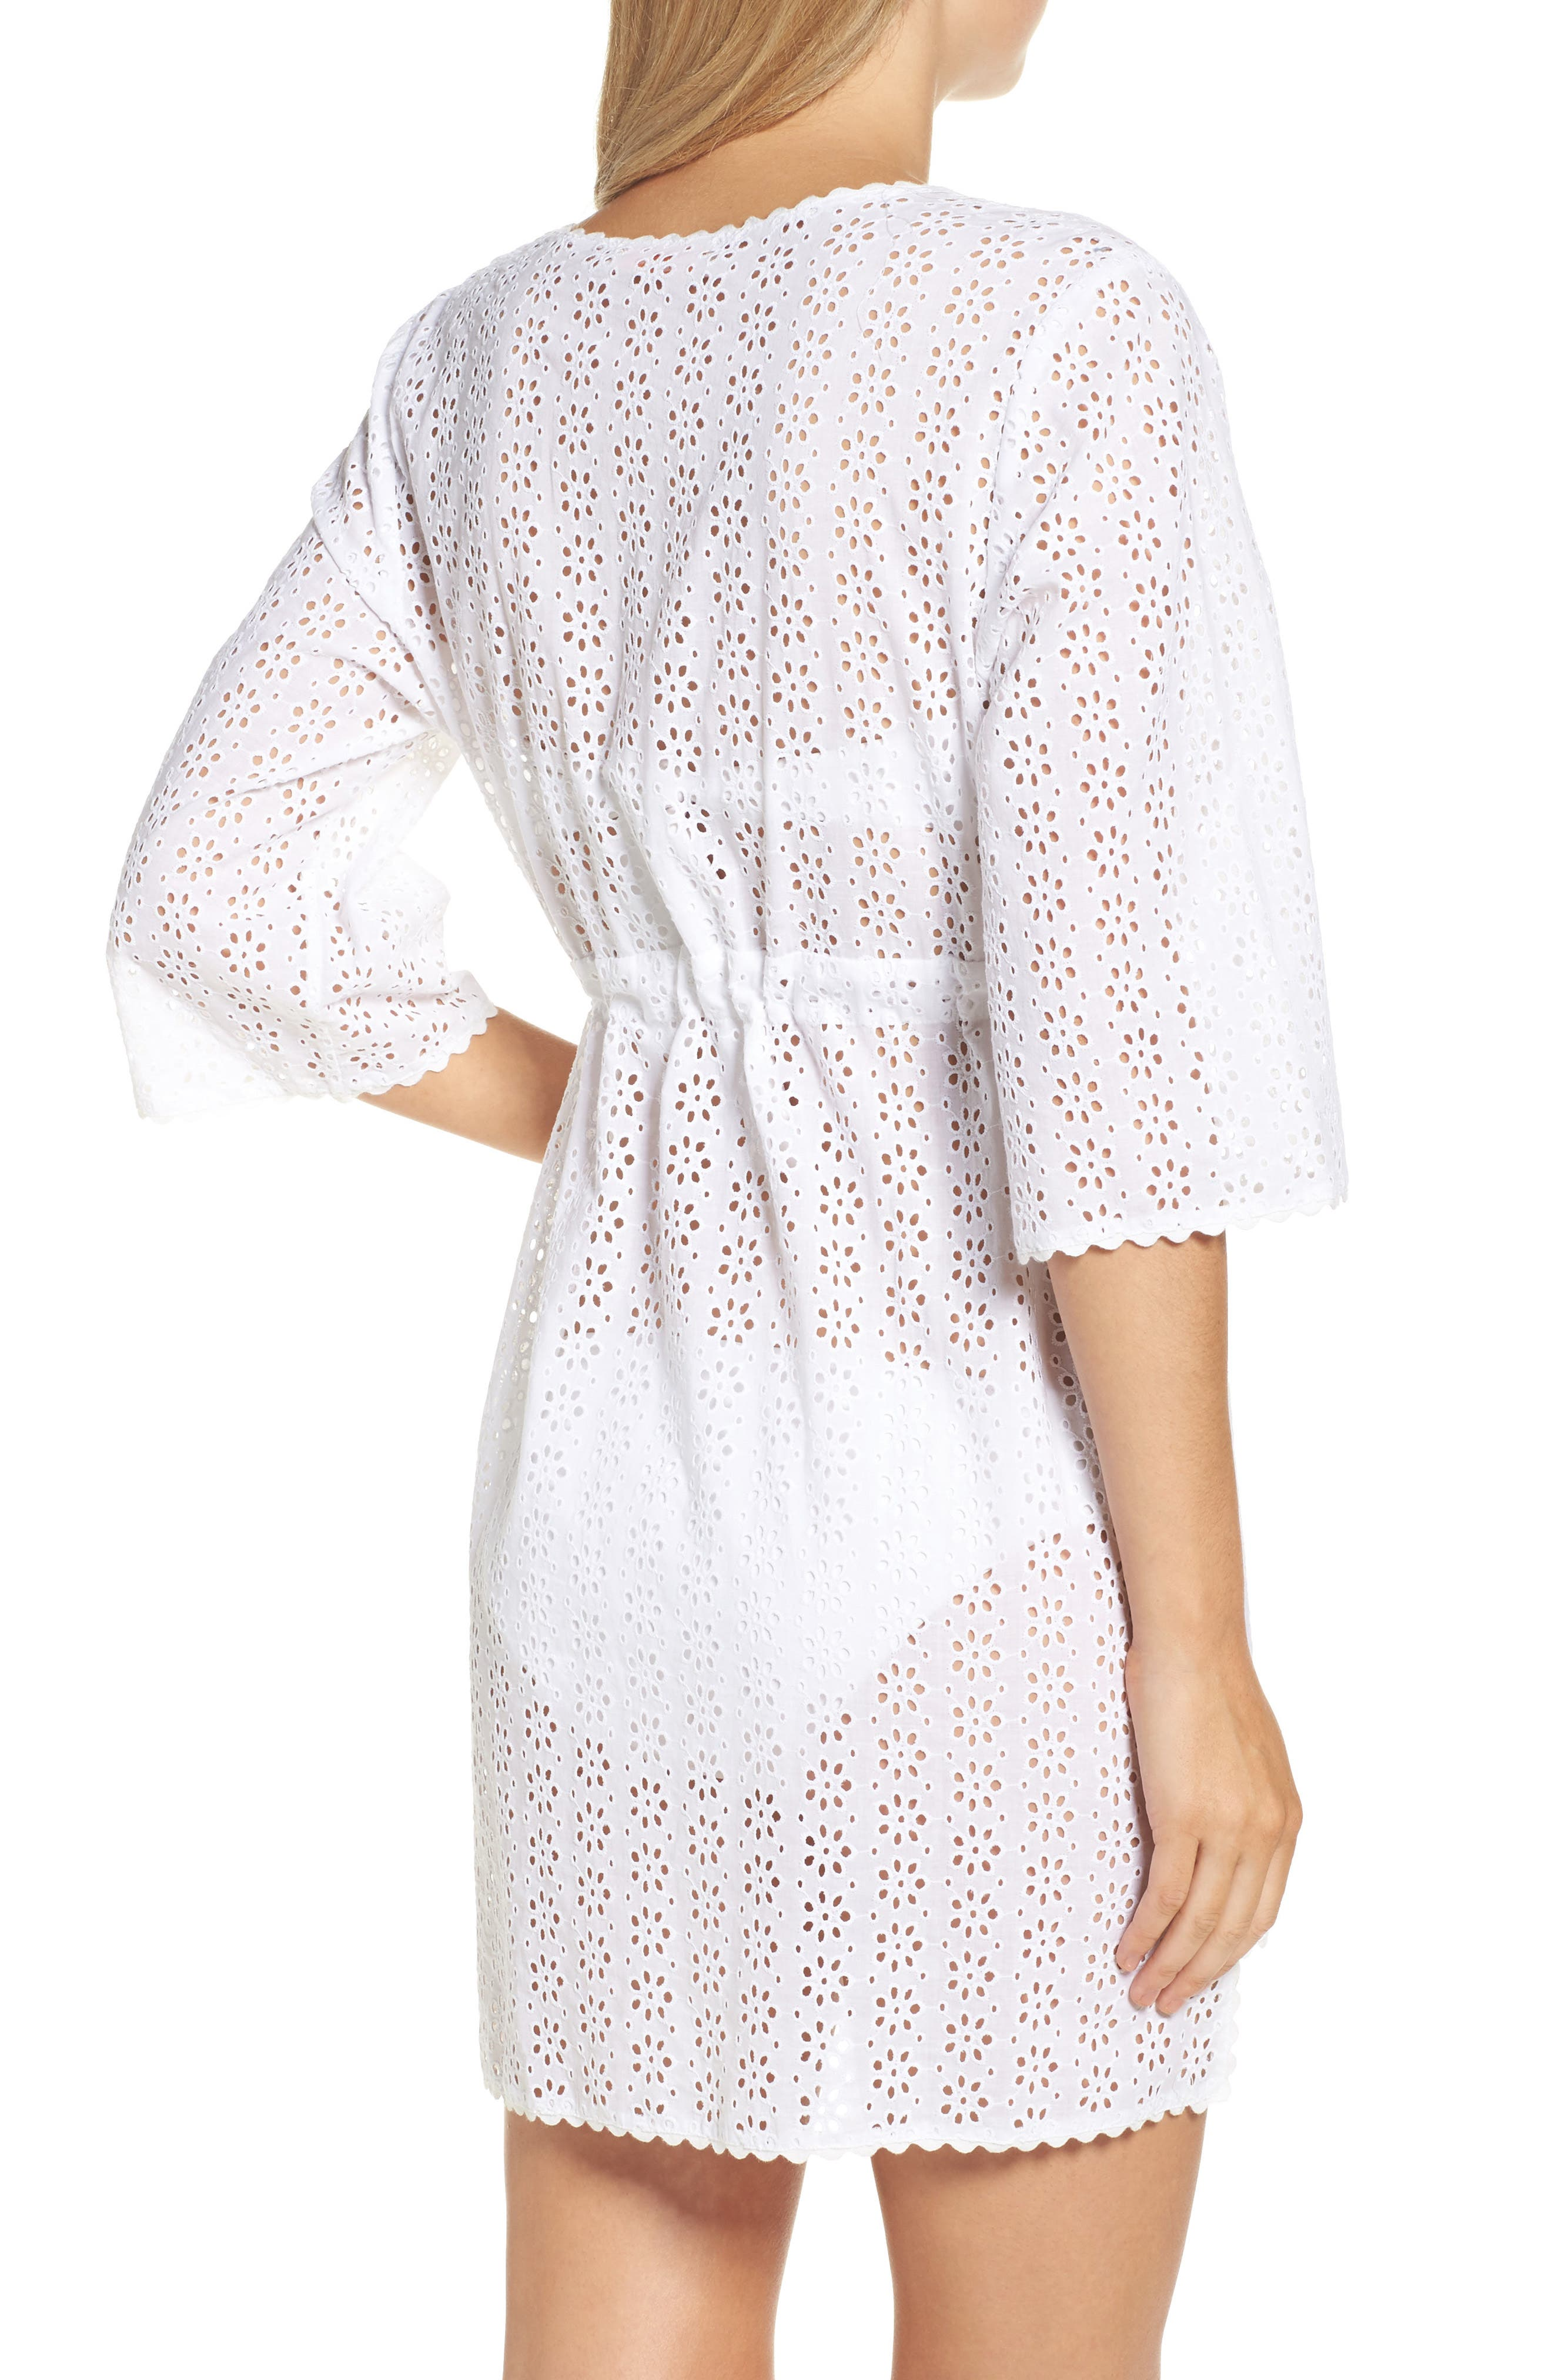 Broderie Anglais Cover-Up Dress,                             Alternate thumbnail 2, color,                             100